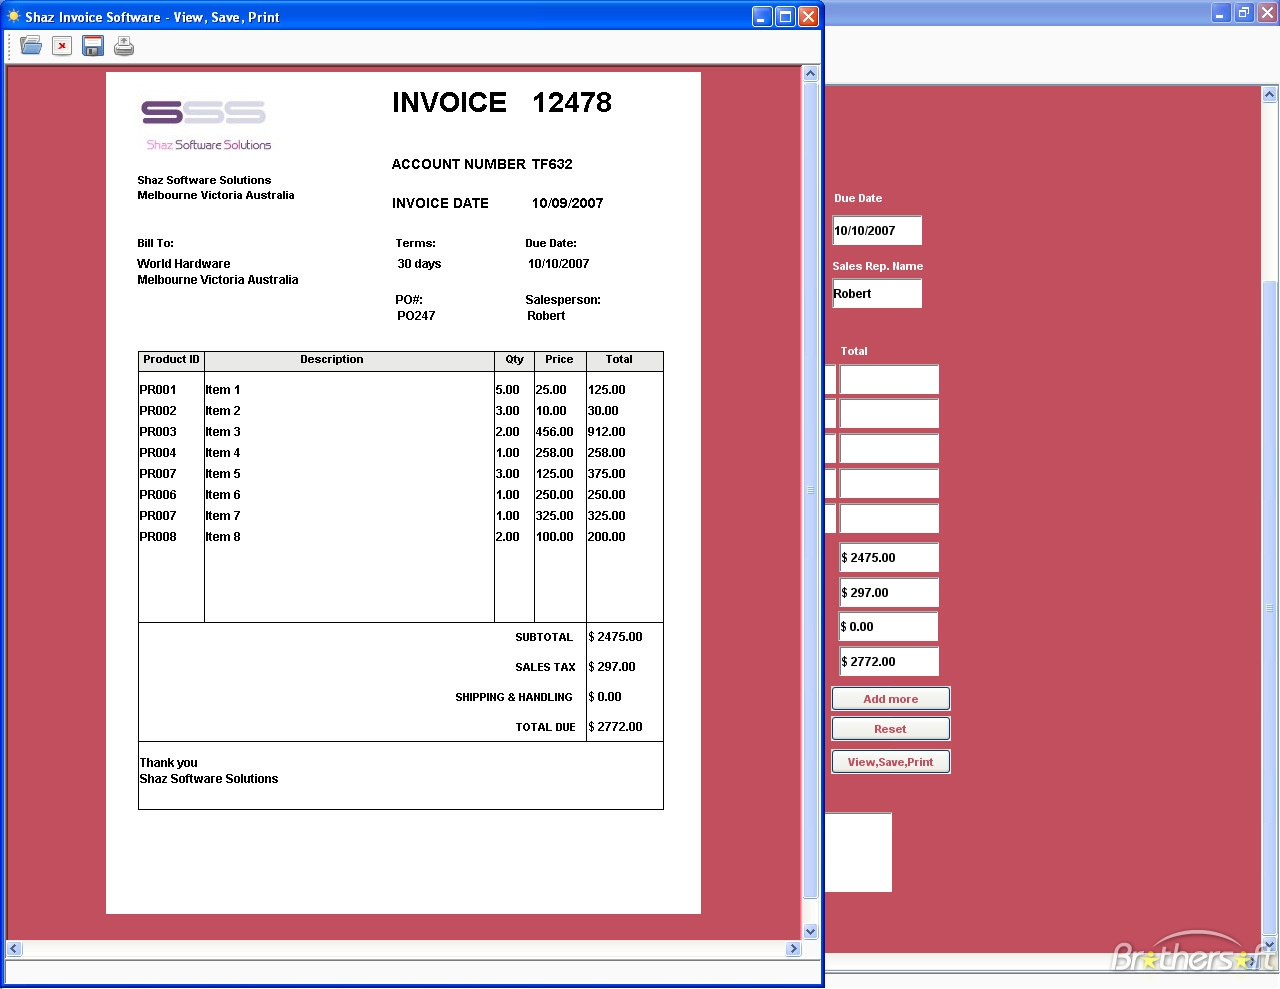 download free shaz invoice software shaz invoice software 100 invoice software free download